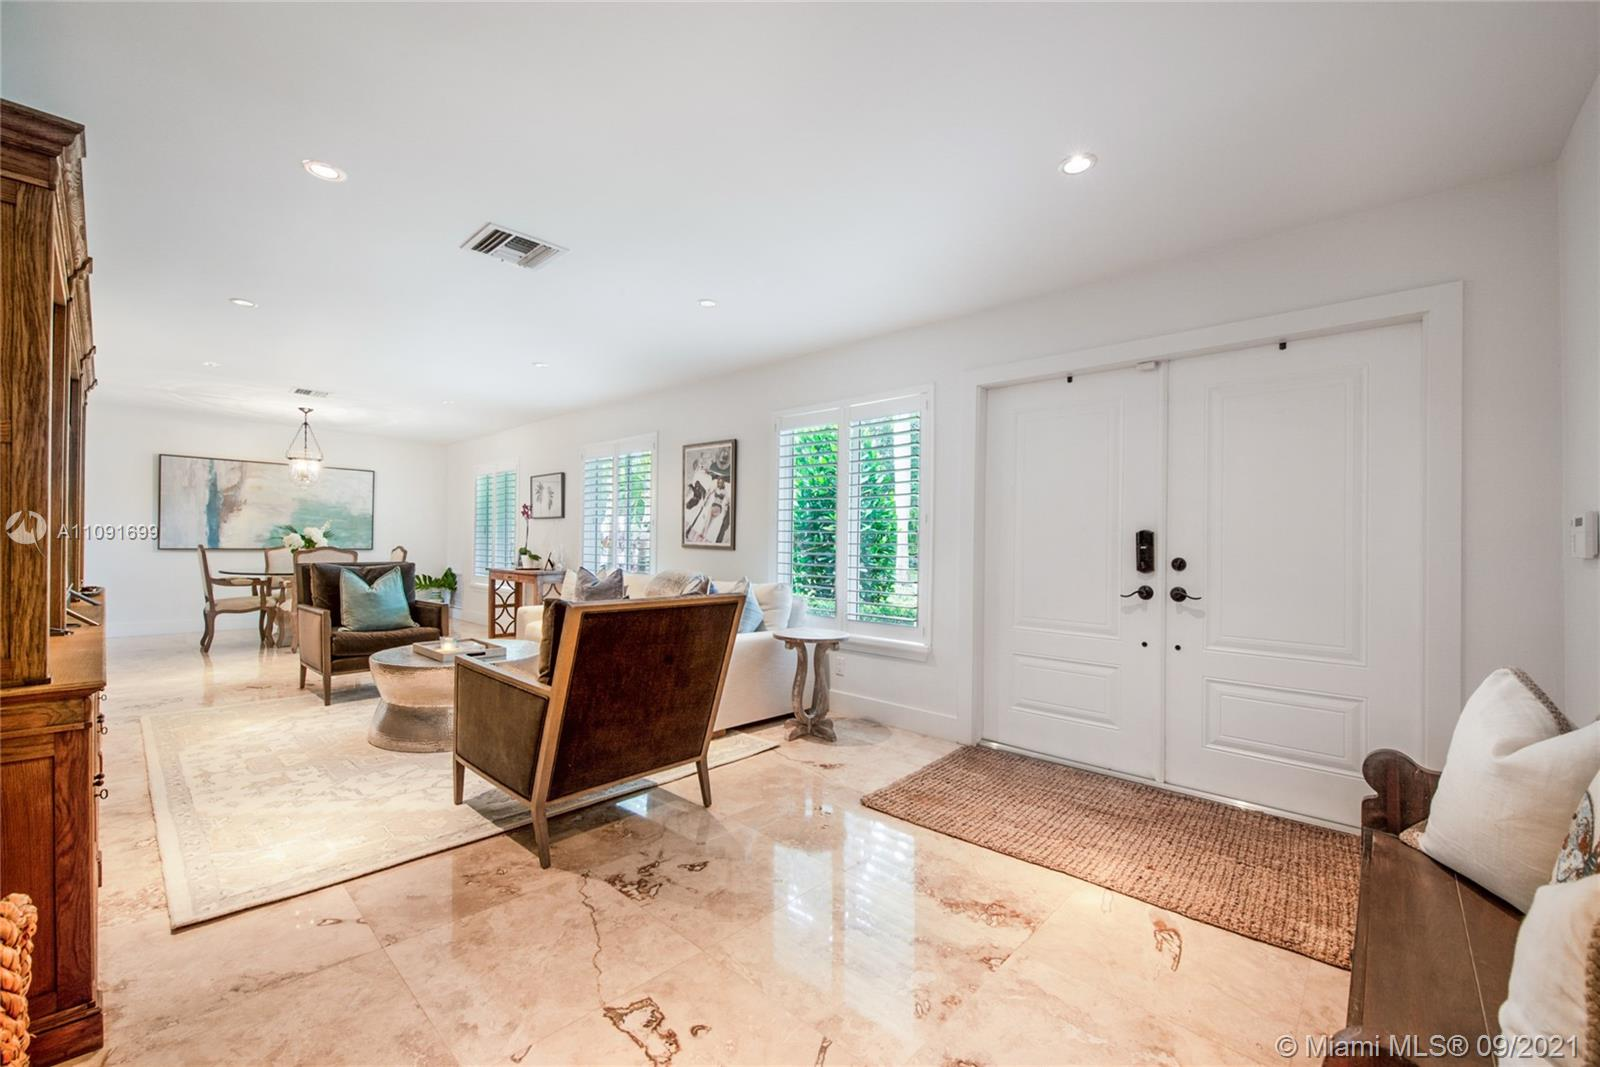 Yes, indeed, it IS all about location! But what about luxury and value?! It's all here! Outstanding 1-level residence in North Pinecrest that has been fashionably updated and now ready for the next family to take over the reins. Just one block north of Coral Pine Park and one block south of Royal Palm Tennis Club. Lots of goodies here including radiant marble floors, impact windows/doors, bespoke closet systems, custom built-ins, 3-year old roof, dual-zone A/C and a glorious verdant, private lot with plenty of room for a pool. Pinecrest Elementary district. Floor plan is available. Priced for a swift sale!